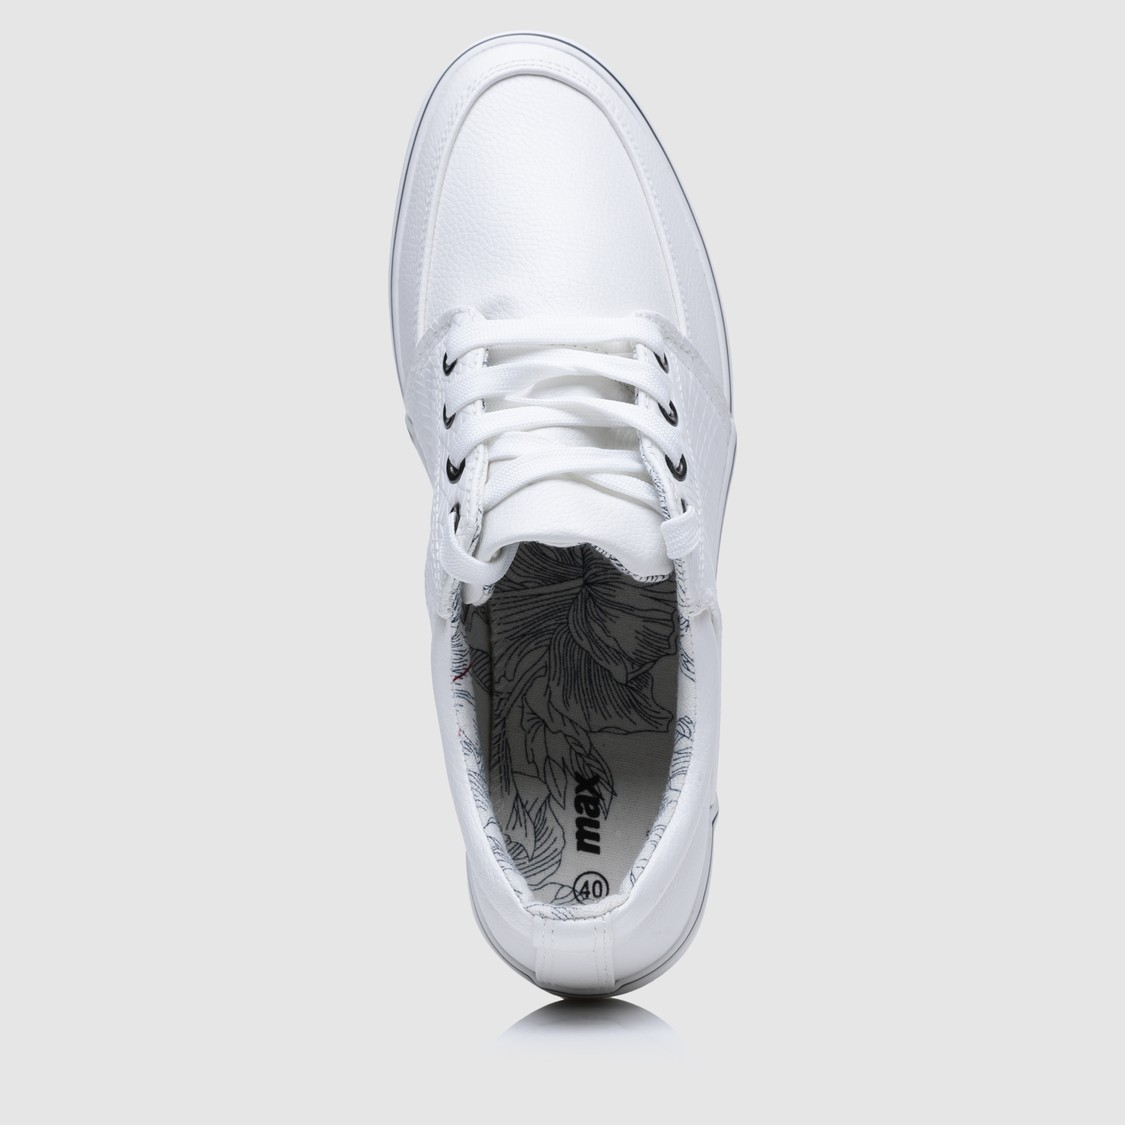 Sneakers with Lace-Up Closure